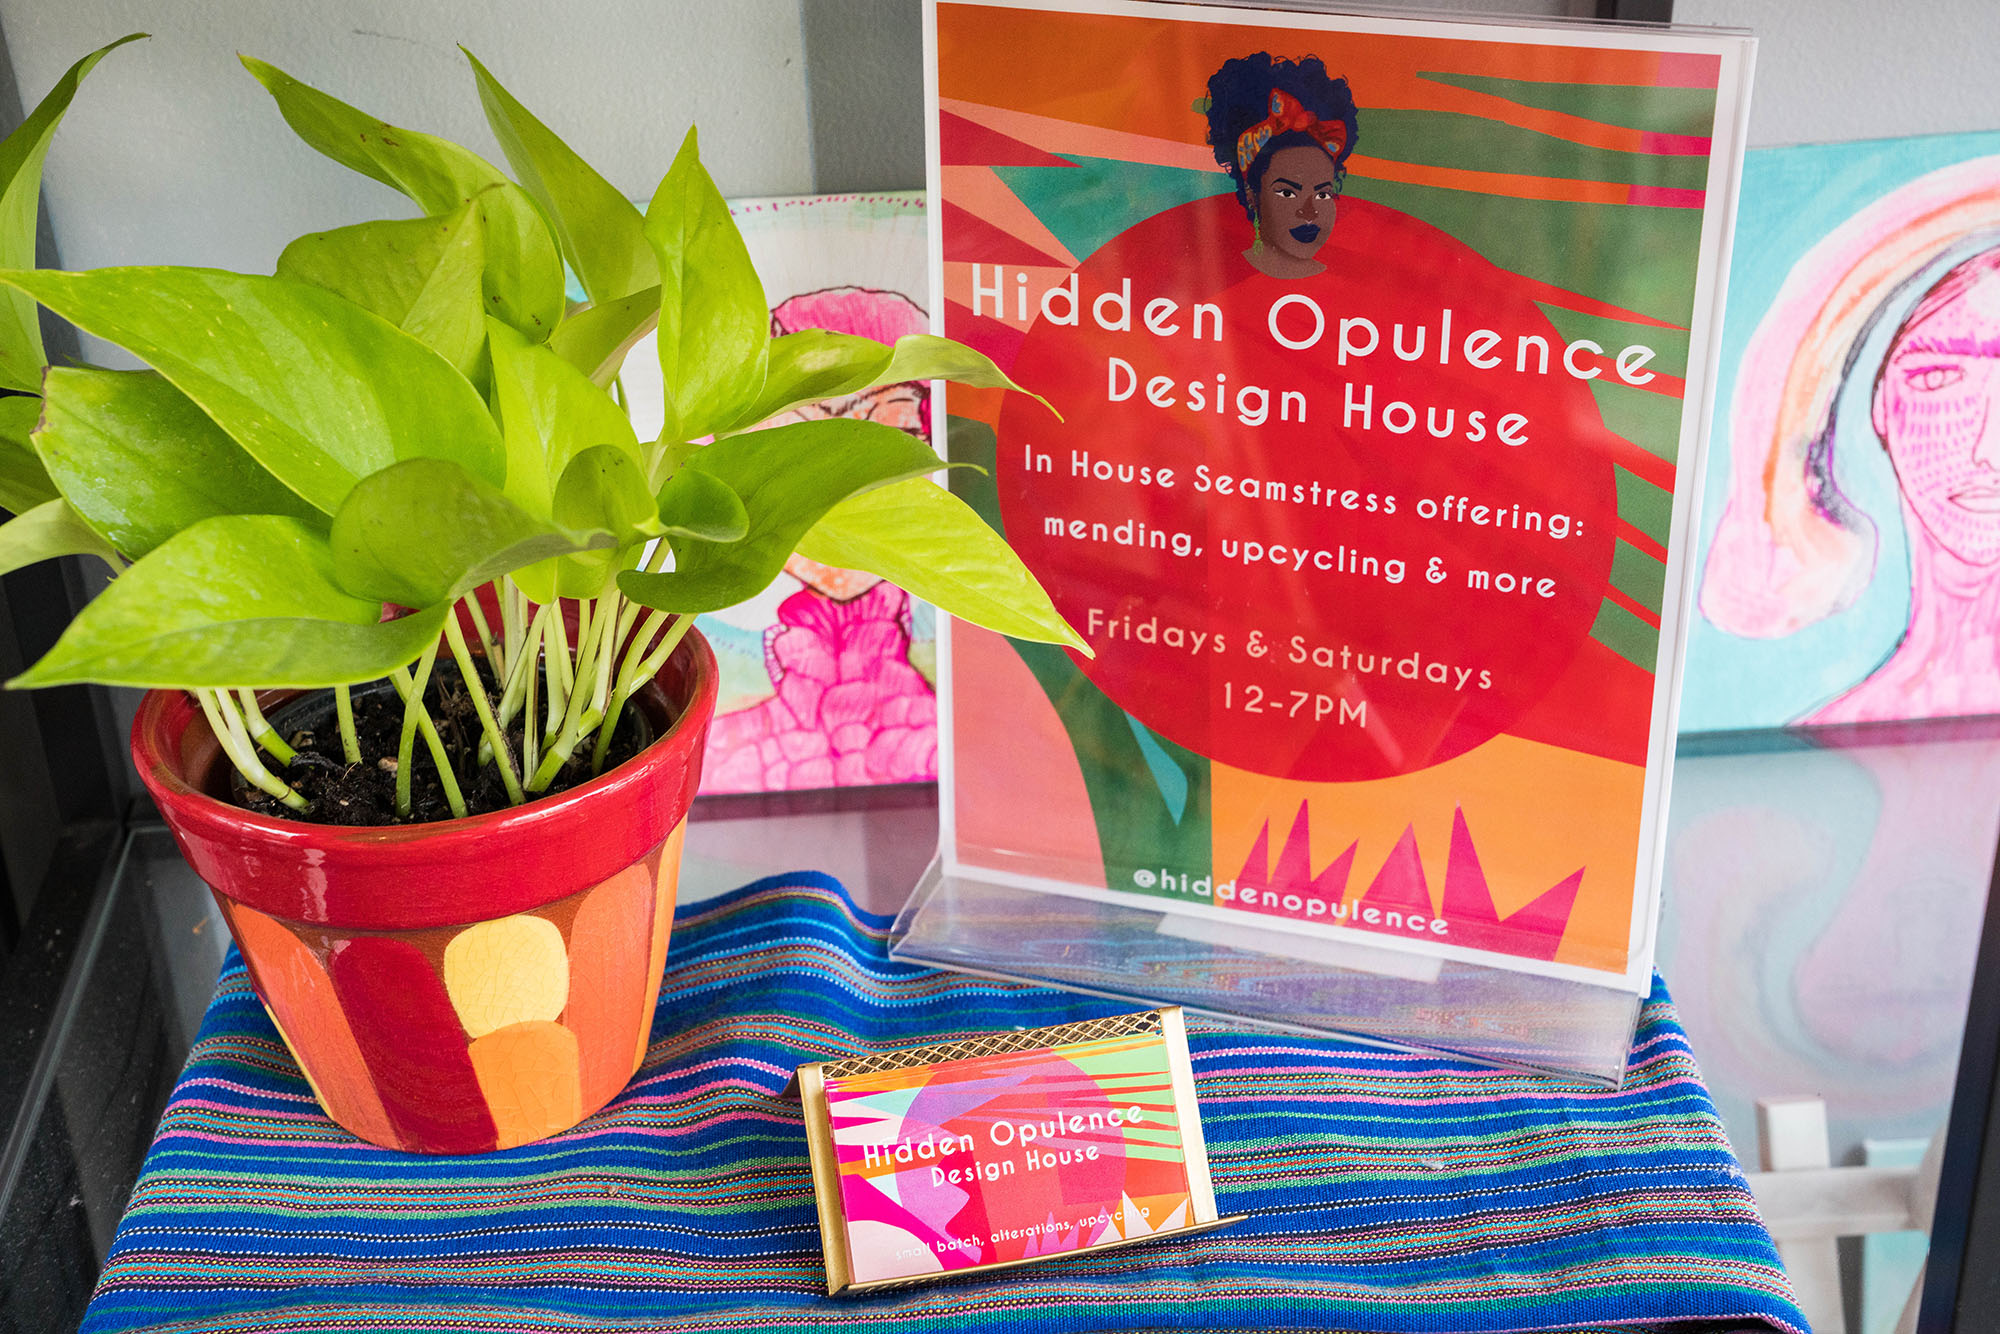 Check out Hidden Opulence the next time you are in Portland.